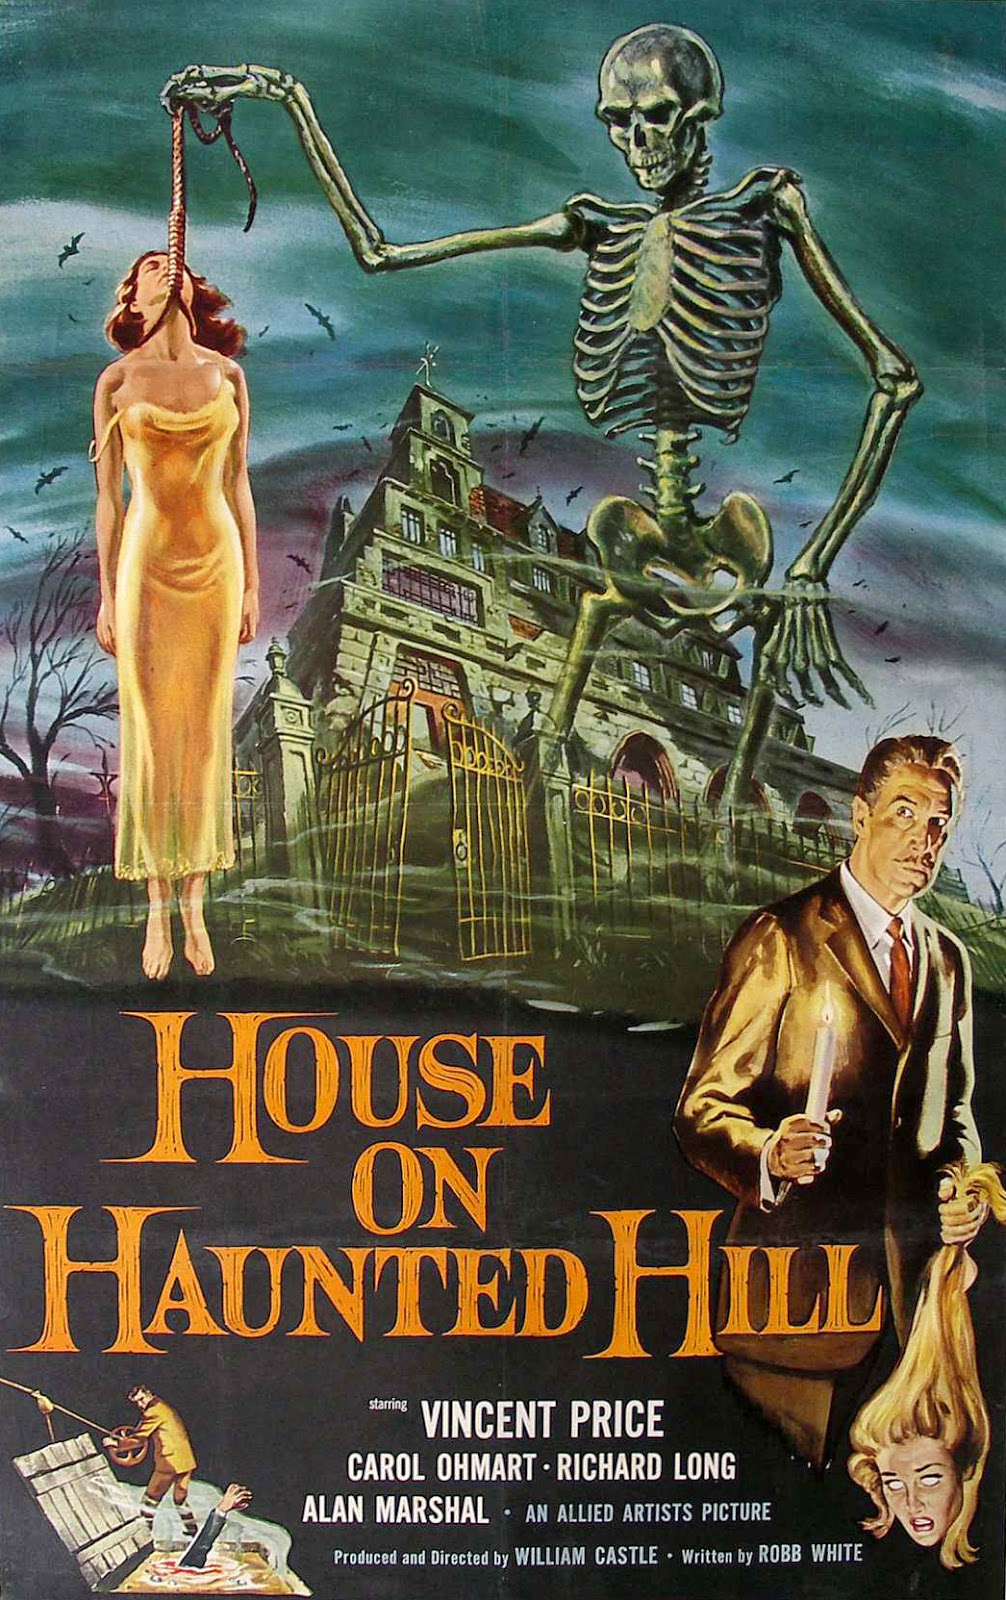 Movies like House on Haunted Hill